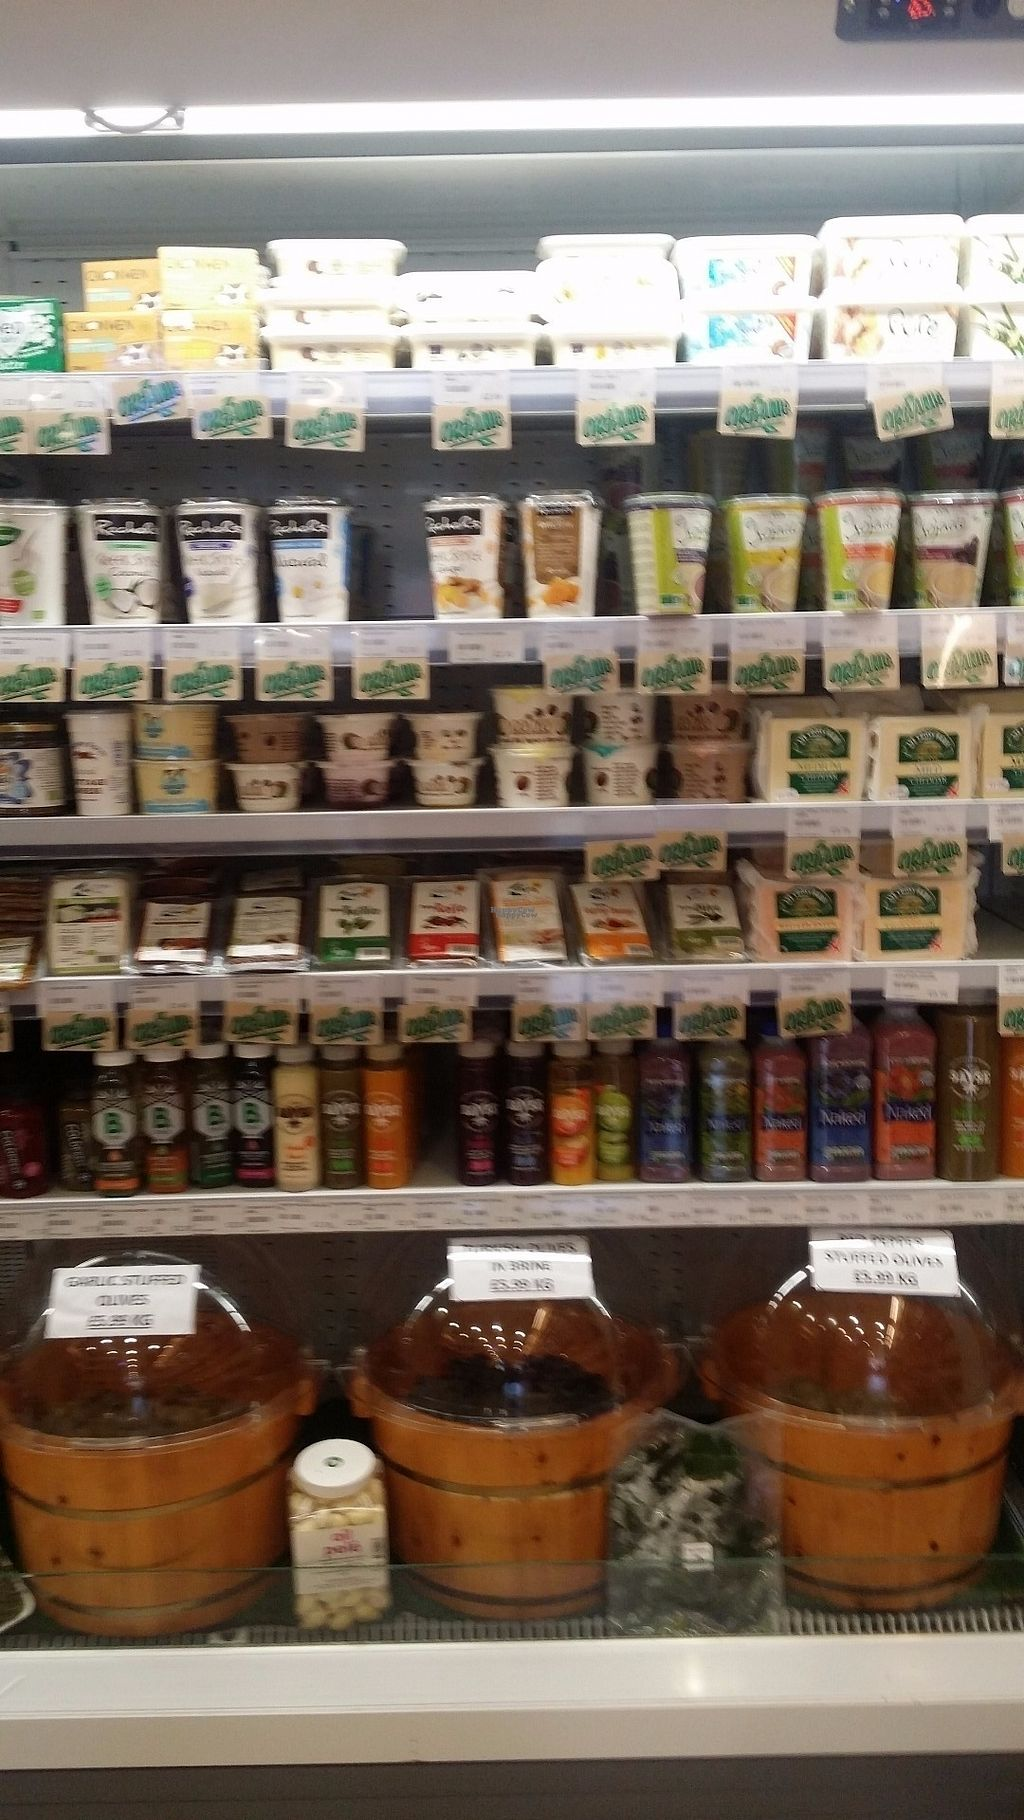 """Photo of CLOSED: Fruit Garden  by <a href=""""/members/profile/roguesby"""">roguesby</a> <br/>Vegan yogurts, drinks, tofus, etc! <br/> August 26, 2016  - <a href='/contact/abuse/image/79138/171526'>Report</a>"""